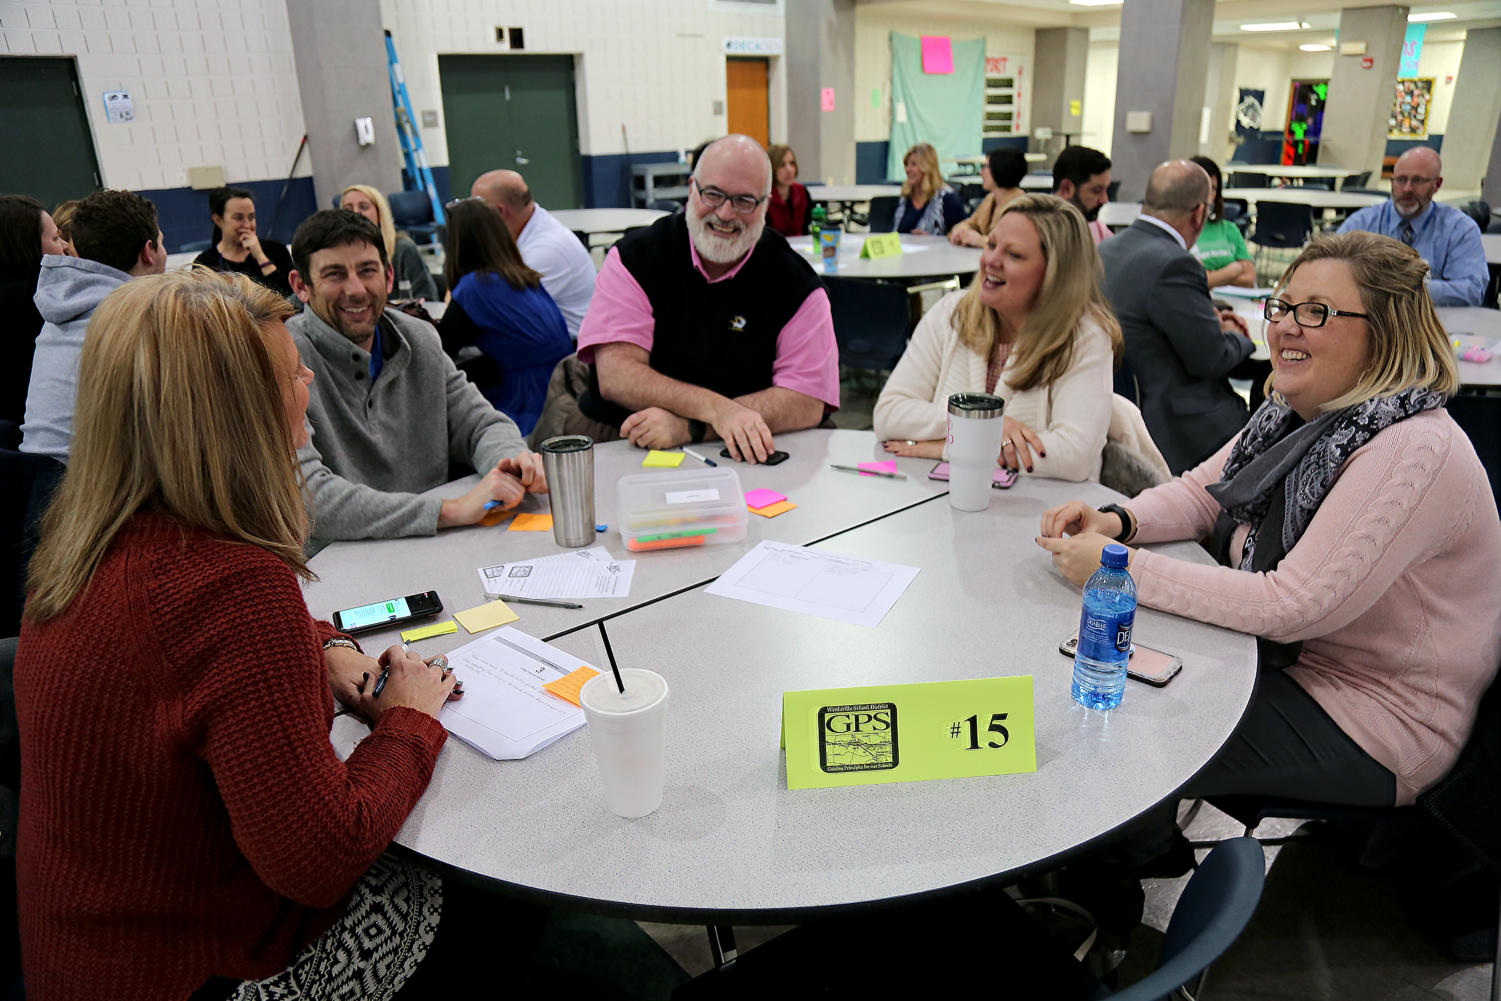 The Wentzville School District community collaborates to come up with their priorities for the next couple years.